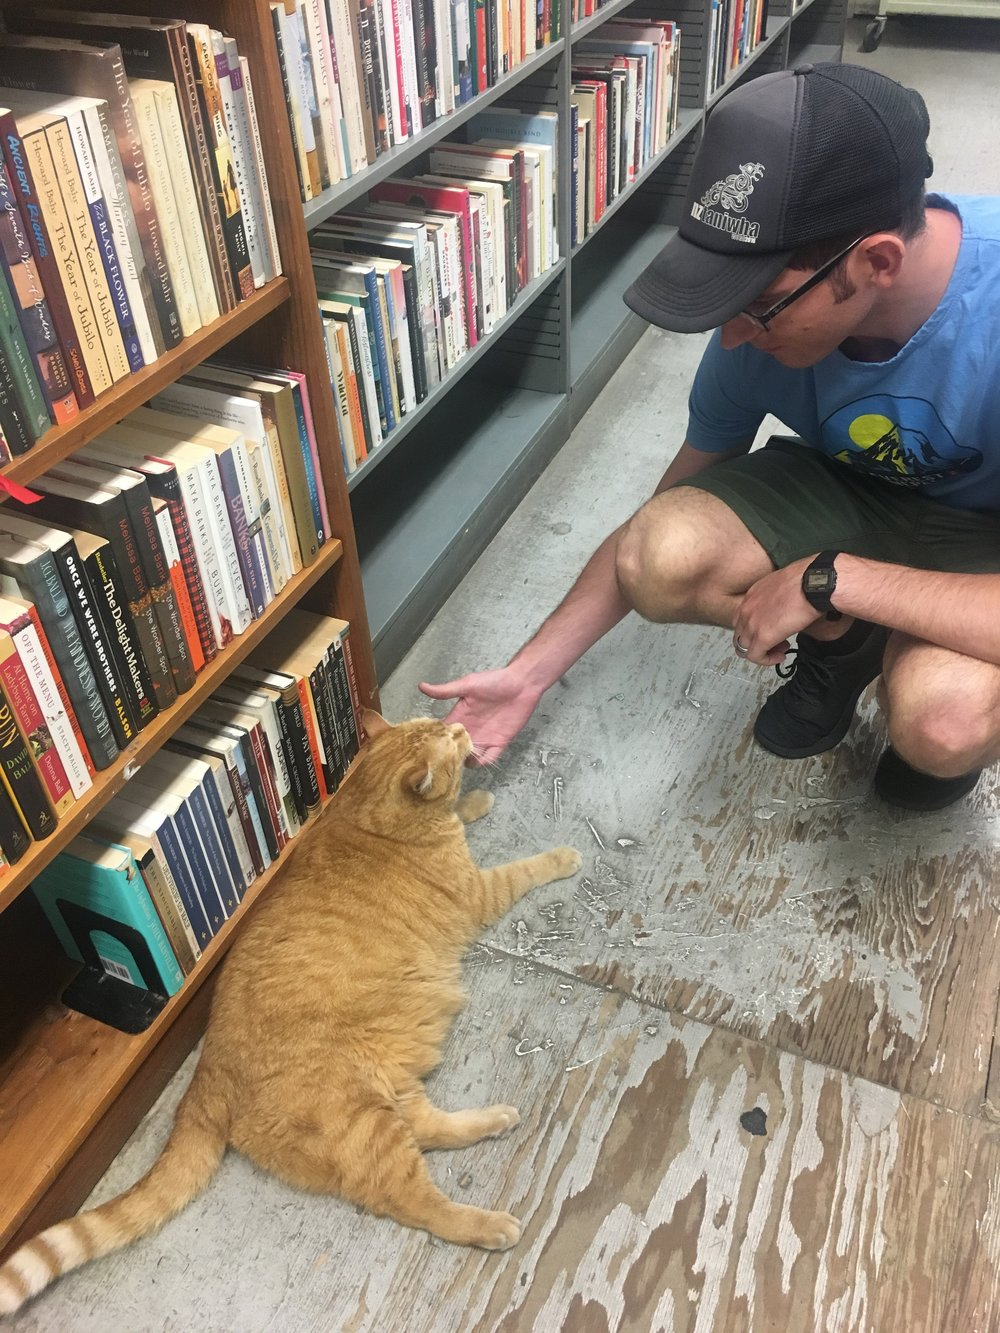 No photos from the Barnes Foundation, so here's a photo of Zev making friends with a tubby cat from a nearby bookstore